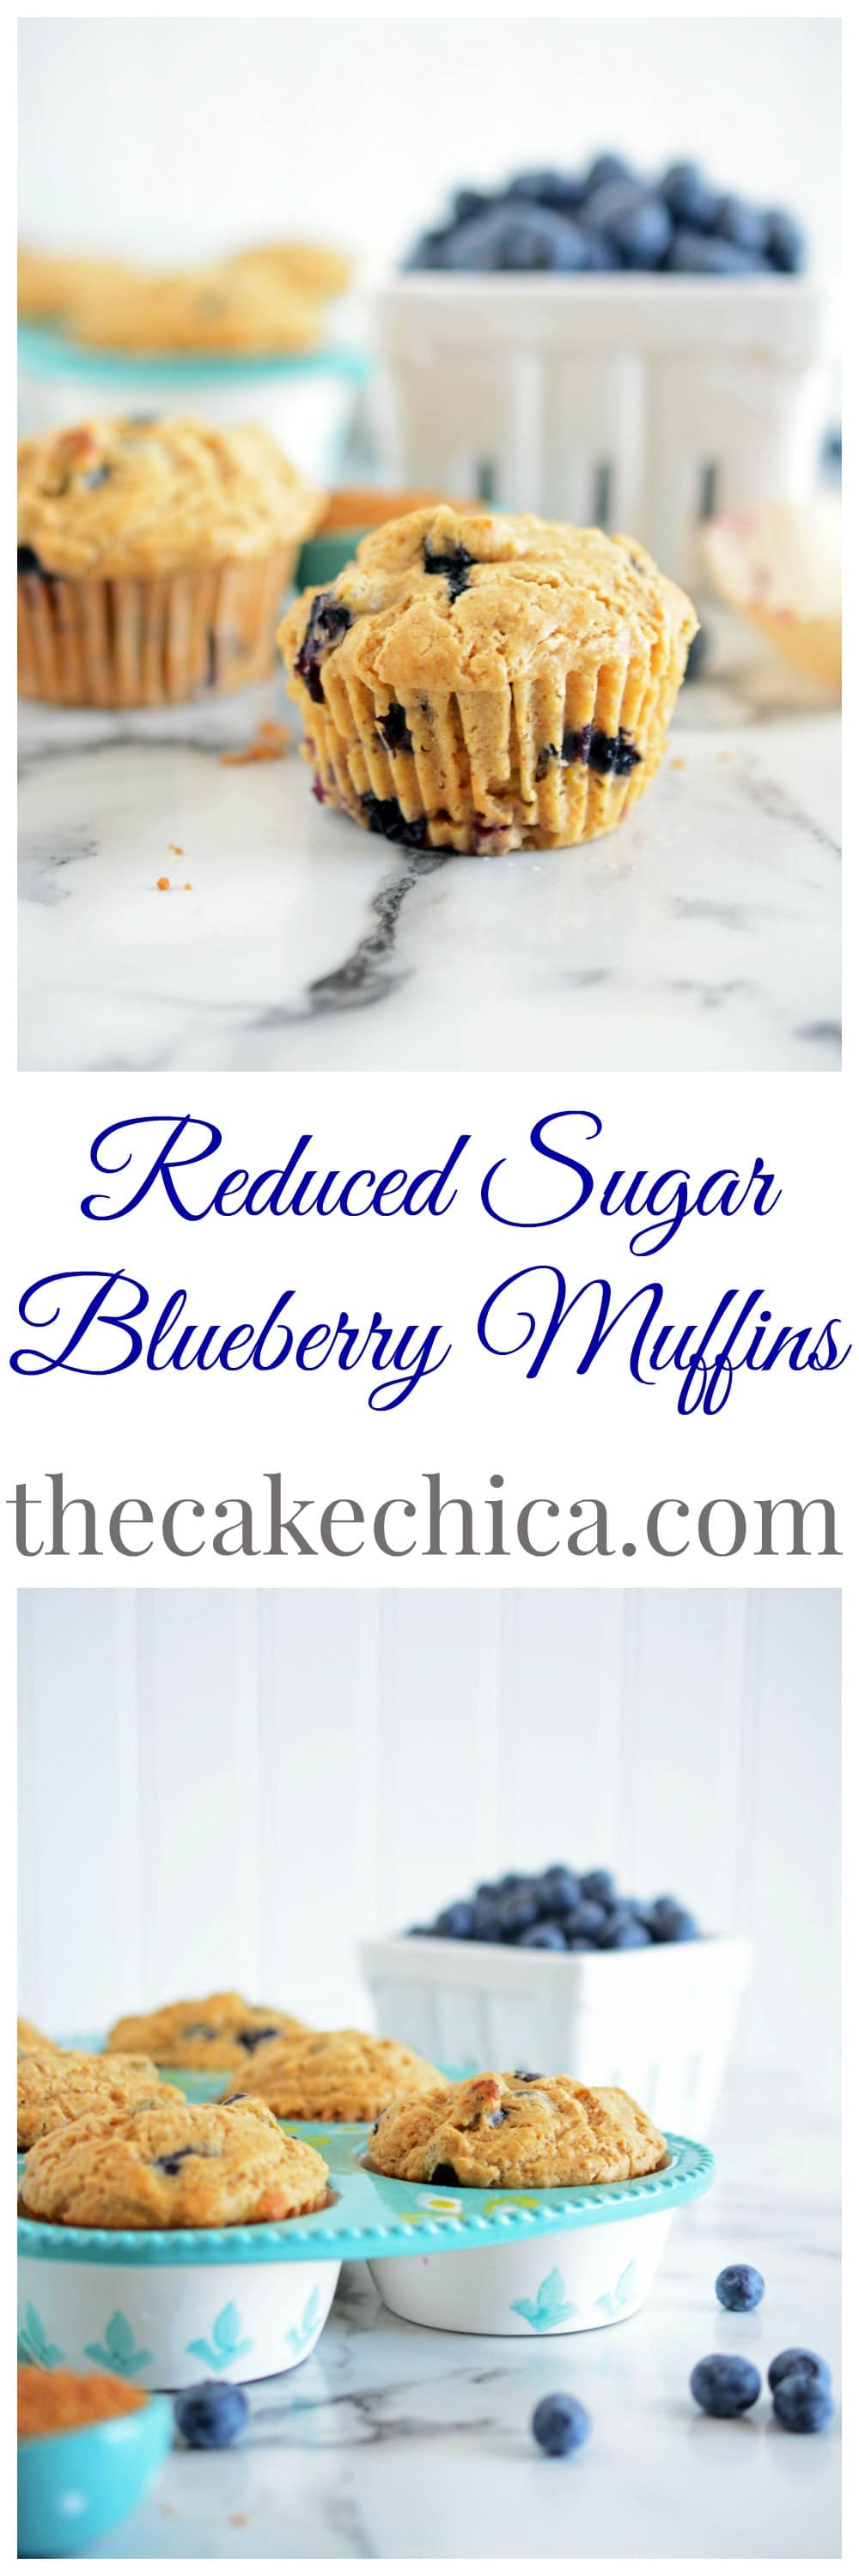 Reduced Sugar Blueberry Muffins